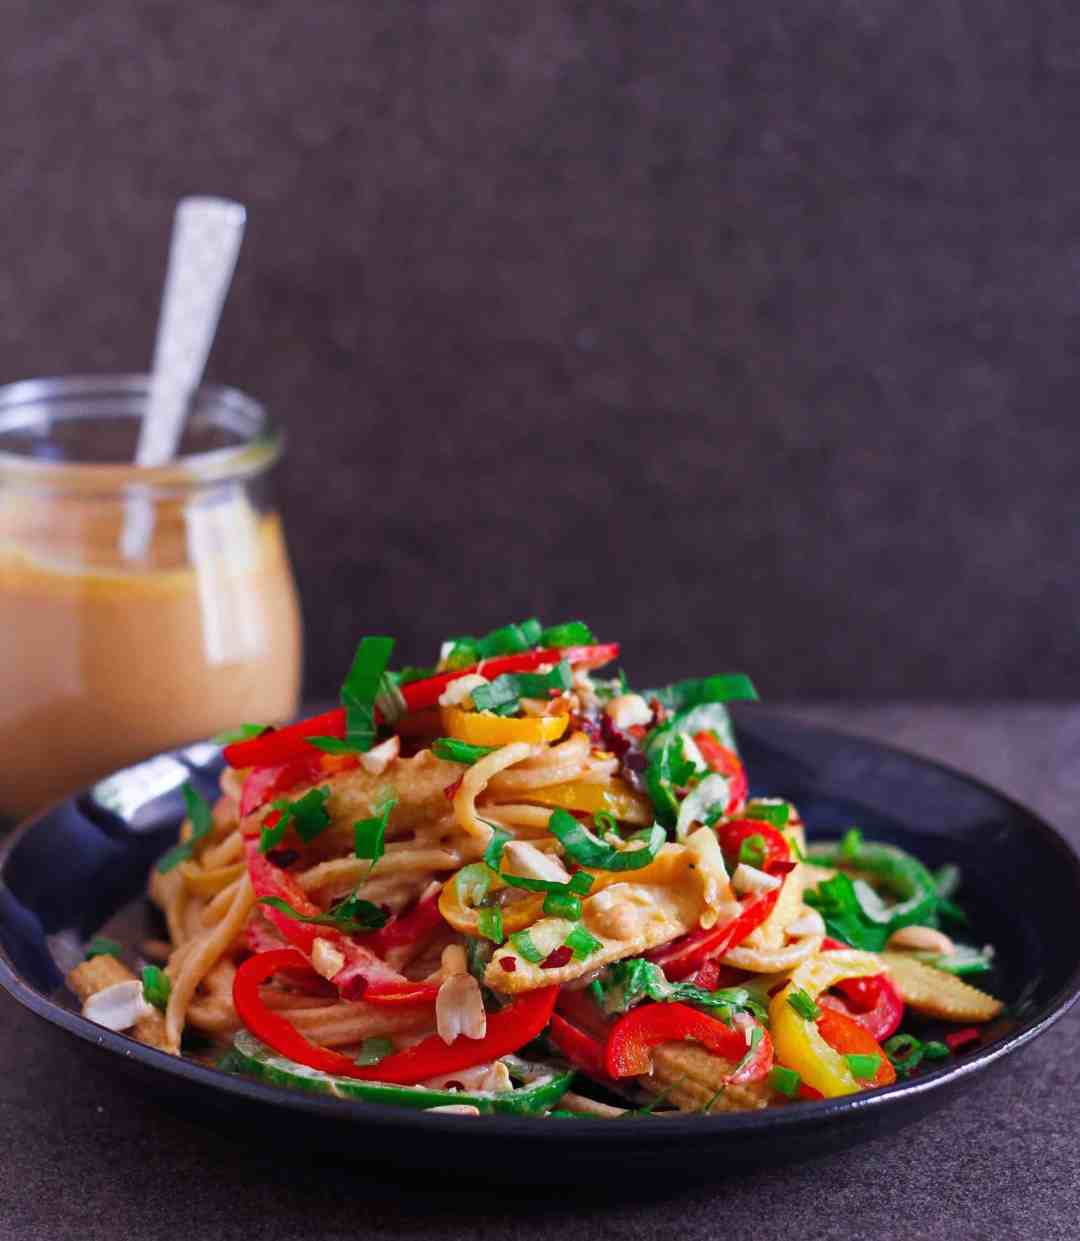 Spicy Thai Peanut Noodles vegan healthy vegetarian Asian food